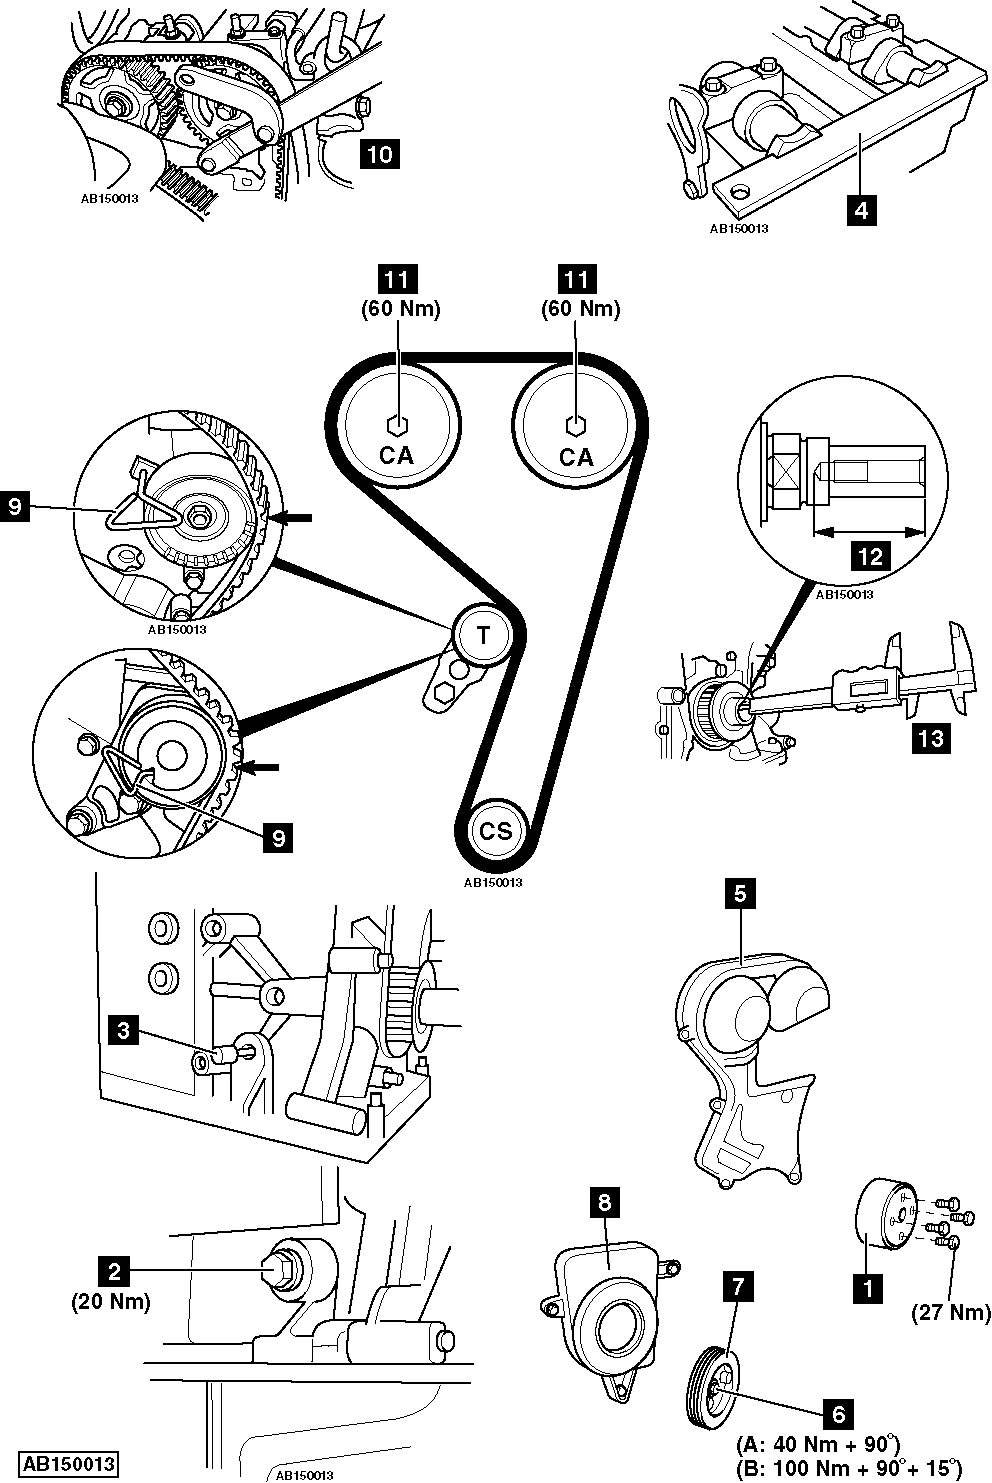 wiring diagram for a toyota land cruiser wiring discover 351w engine diagram fj60 land cruiser